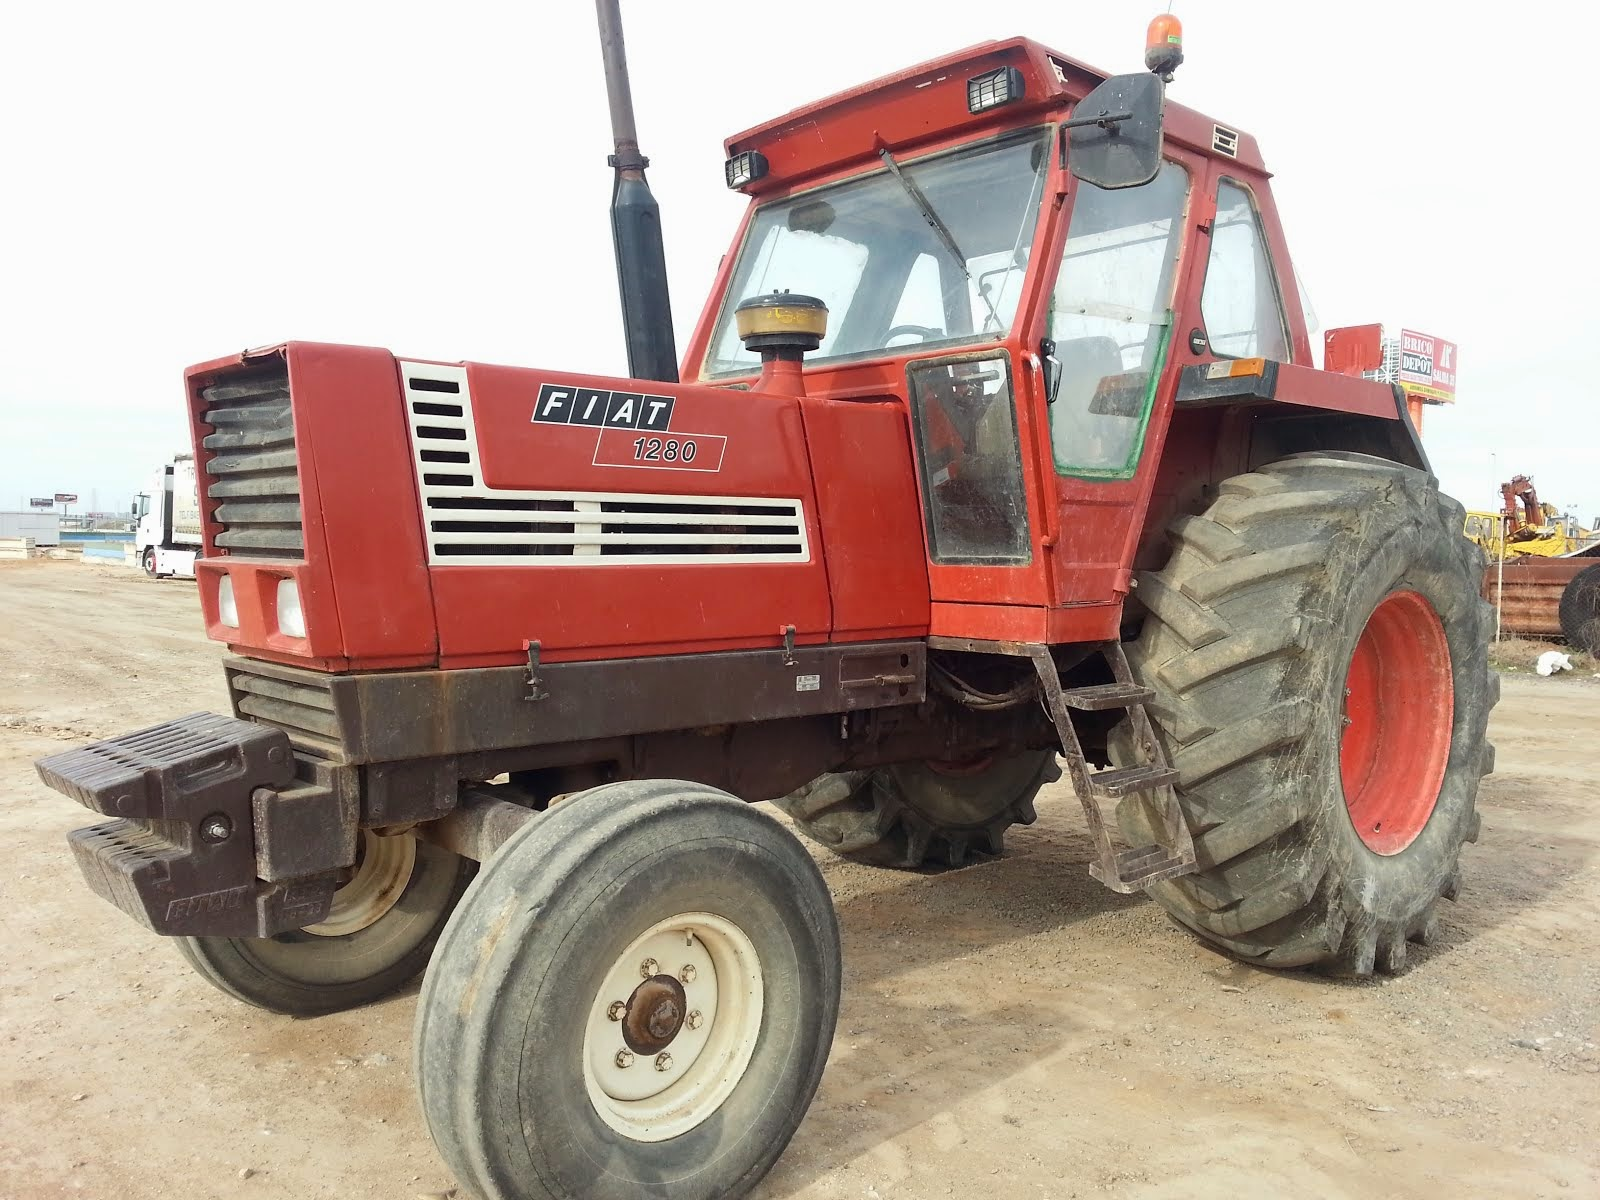 TRACTOR FIAT 1280